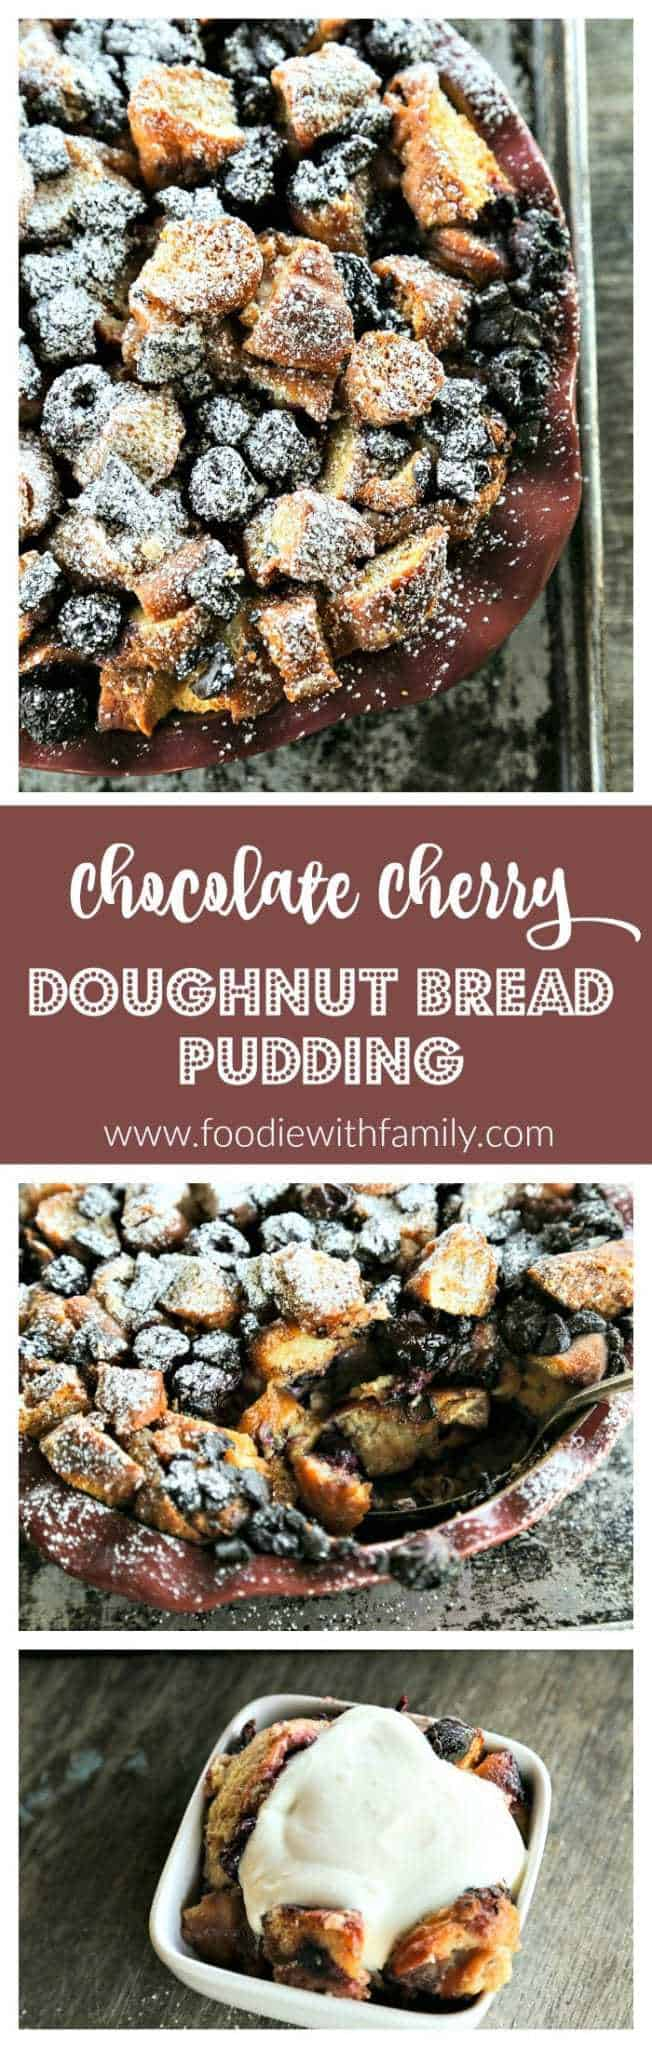 Chocolate Cherry Doughnut Bread Pudding - Foodie With Family